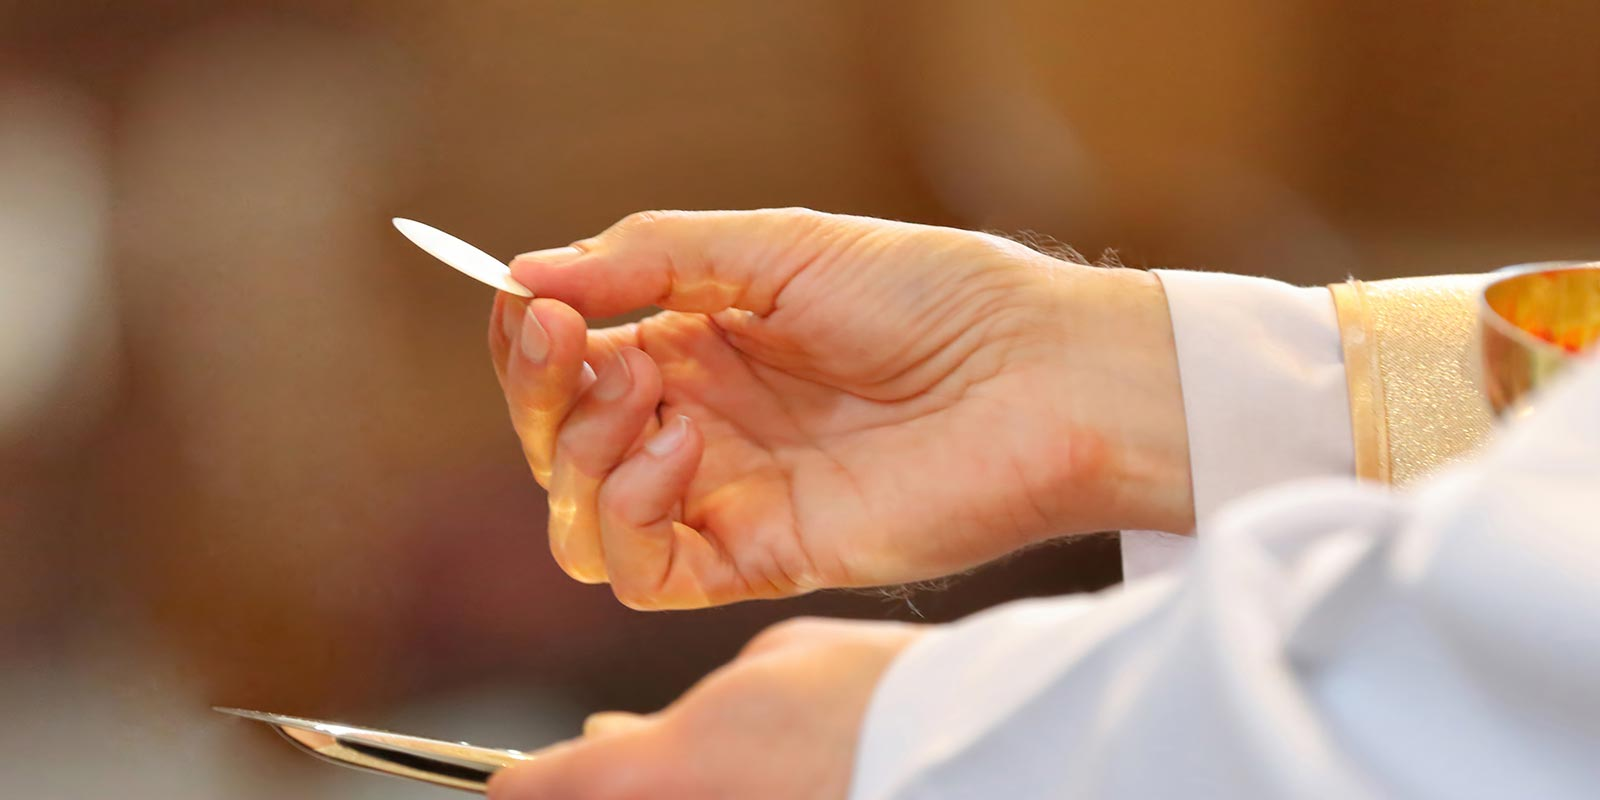 A priest hand presenting the Eucharist